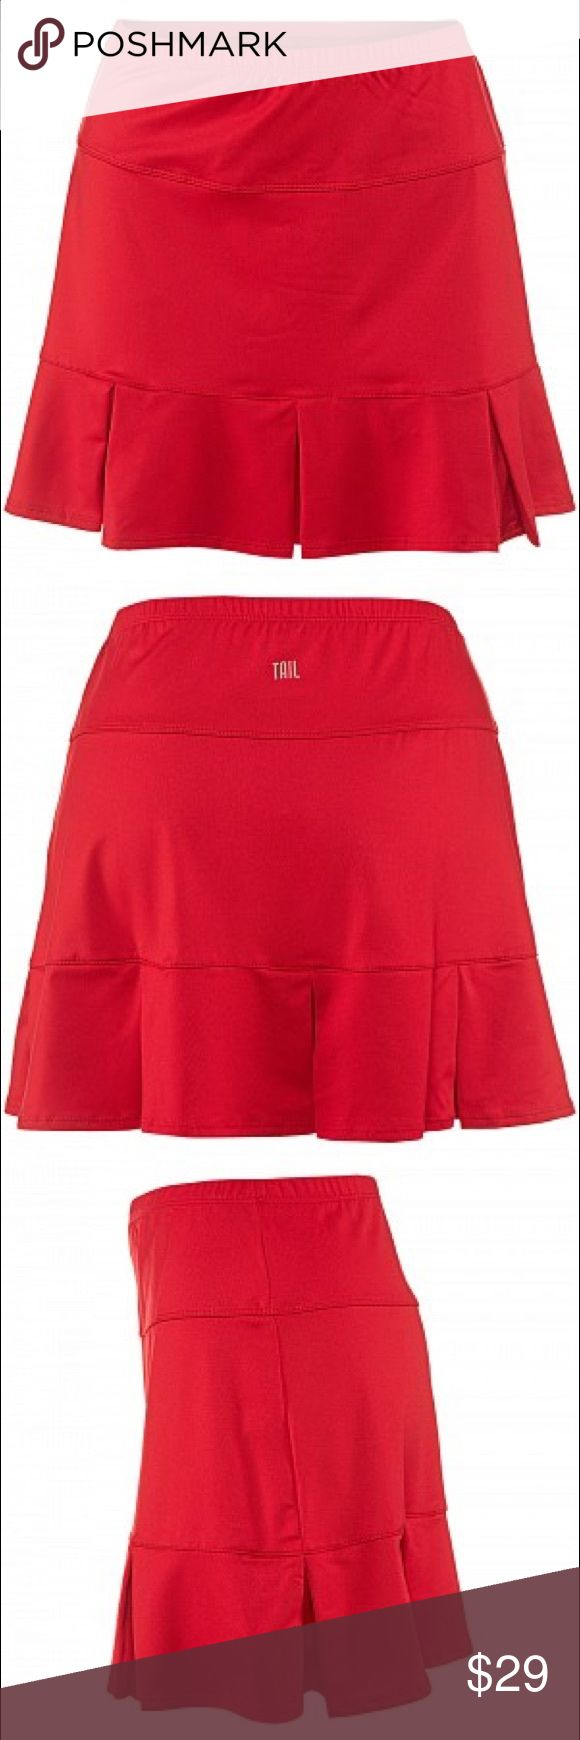 {Tail} Tennis Skirt Offers Welcome  Tail Red Doral Pleated Tennis Skirt, Size Medium  Boost your game and style this season with the perfect outfit. The Tail Doral Skirt features an elastic waistband, built-in short with mesh ball pockets, cute contrast pleating on hem, UV protection, and heat transfer Tail logo on back waist. Content: 92% Polyester, 8% Spandex. Colors: Red  All items come from a smoke free, dog friendly home.  C Tail Skirts